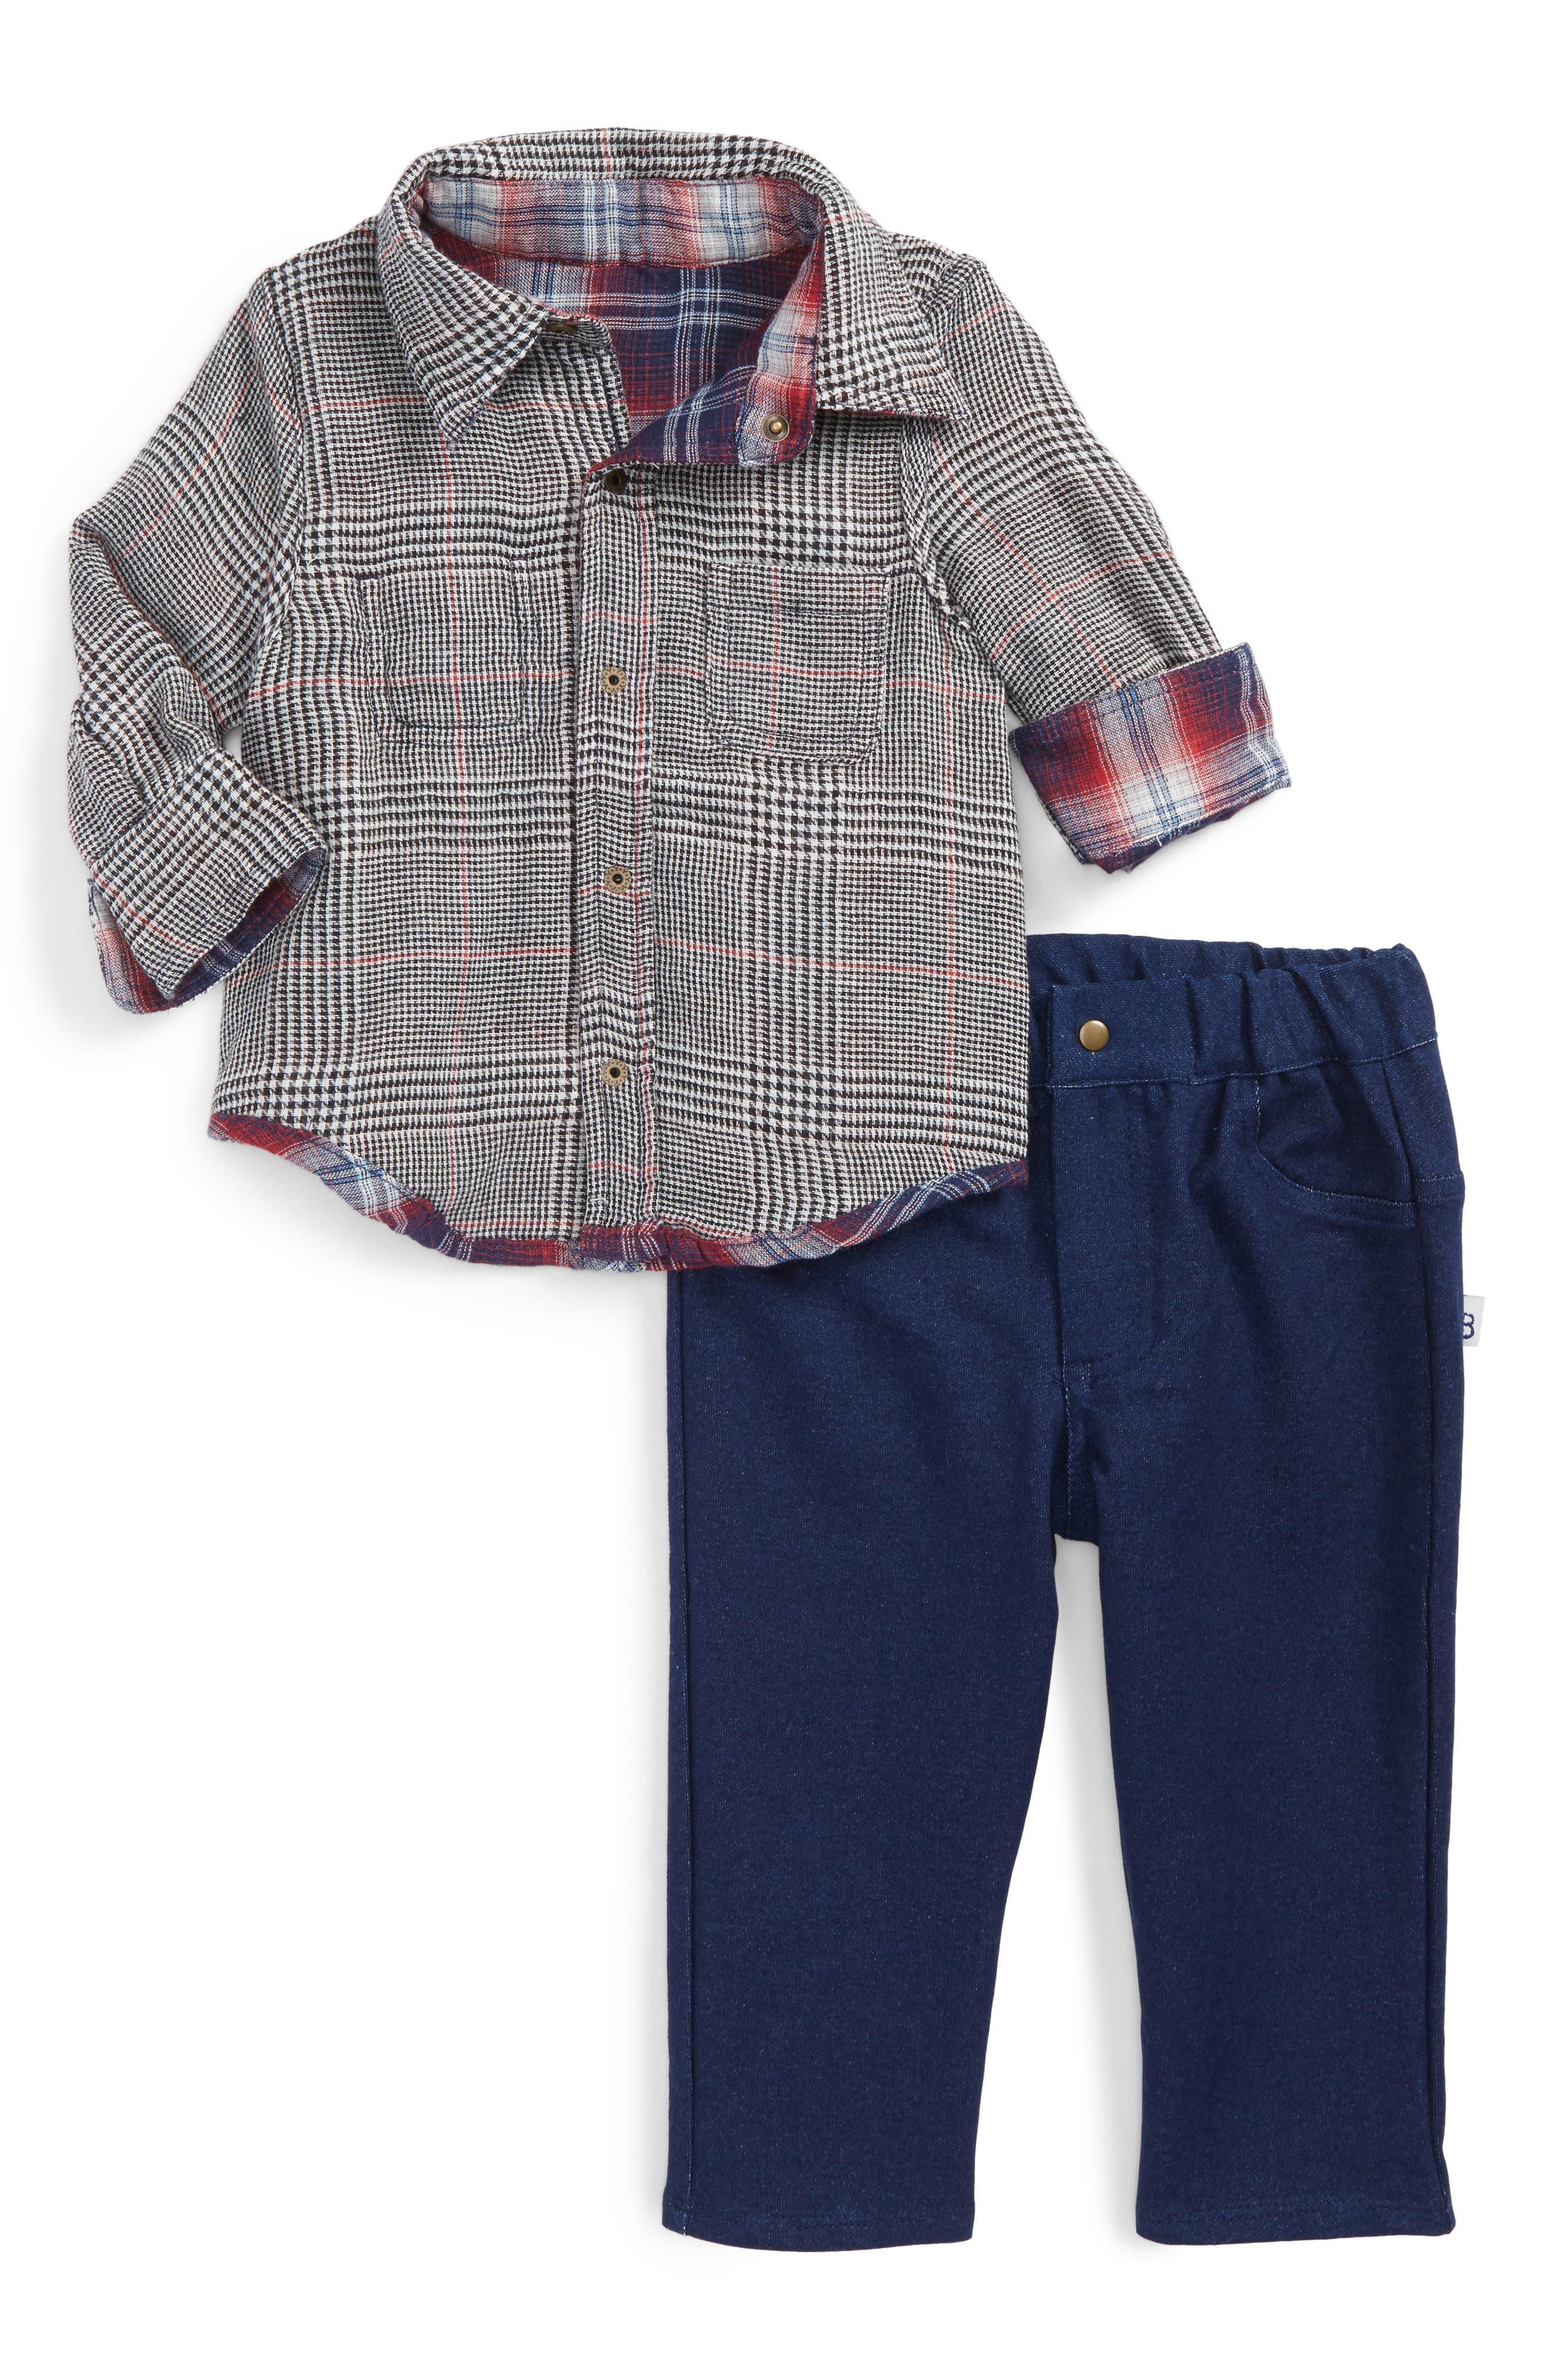 Alternate Image 2  - Little Brother by Pippa & Julie Reversible Woven Shirt & Pants Set (Baby Boys)